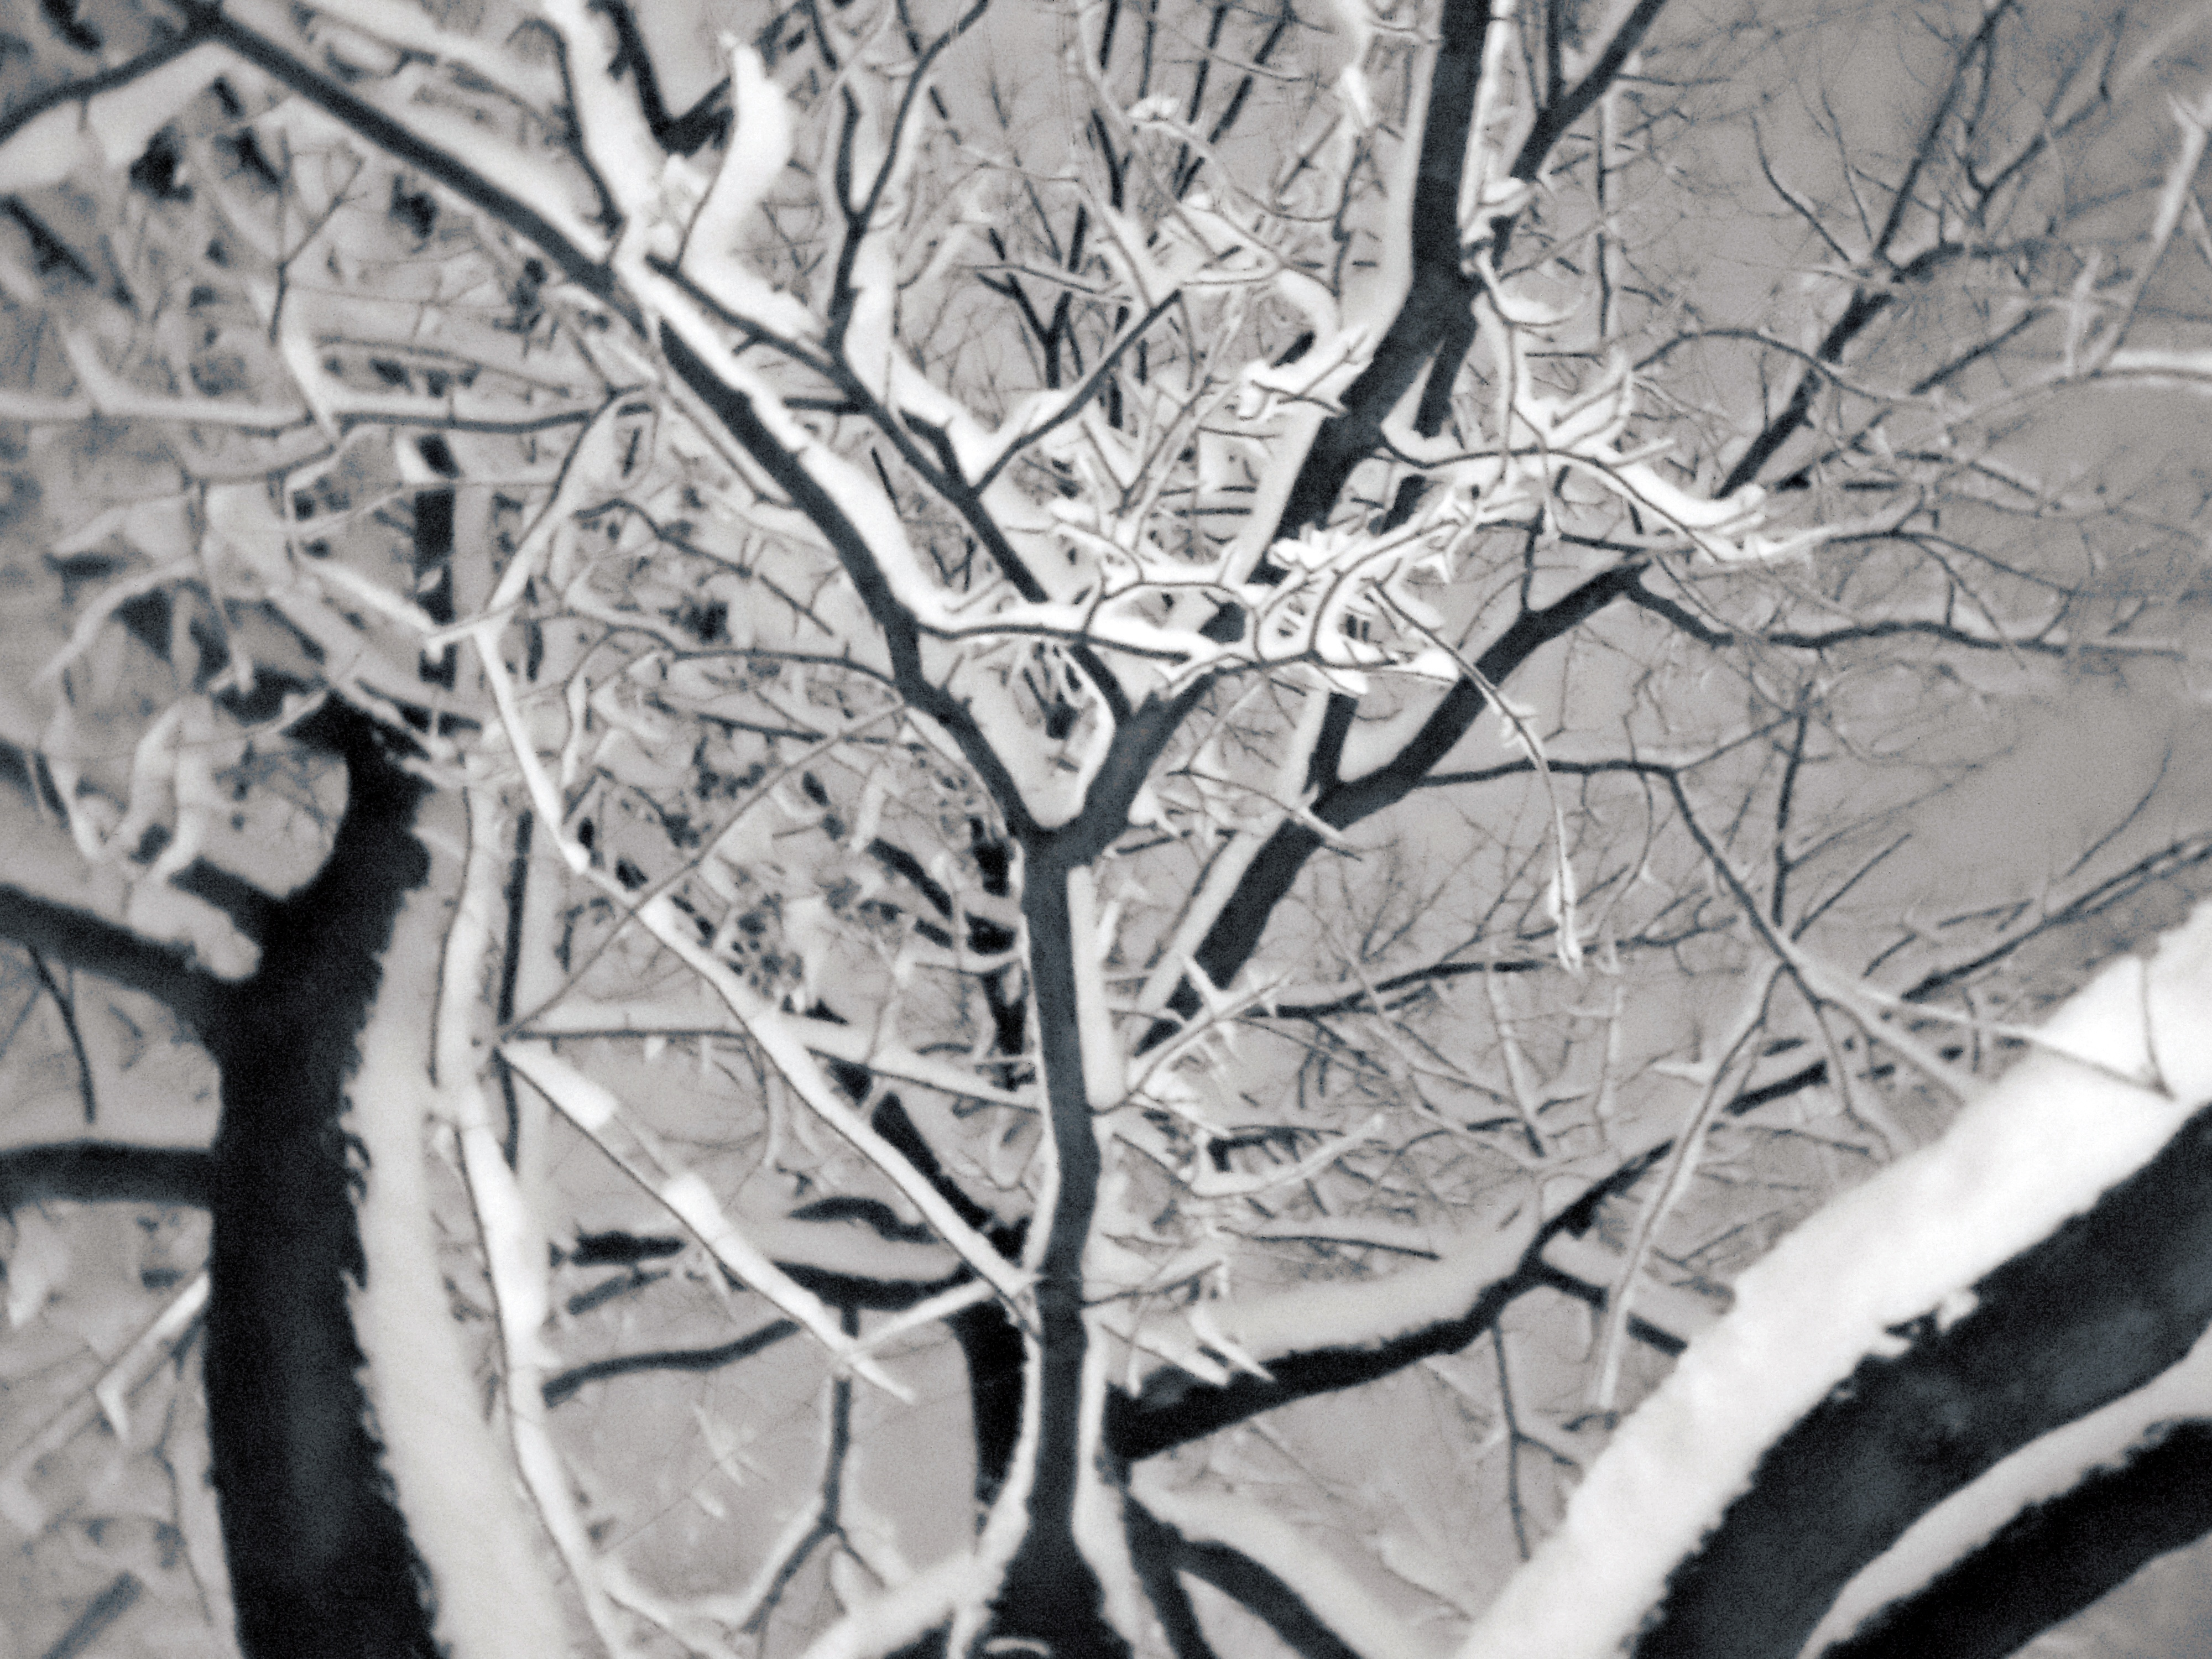 Snow and ice can weigh down weak or dead branches, creating a falling hazard.